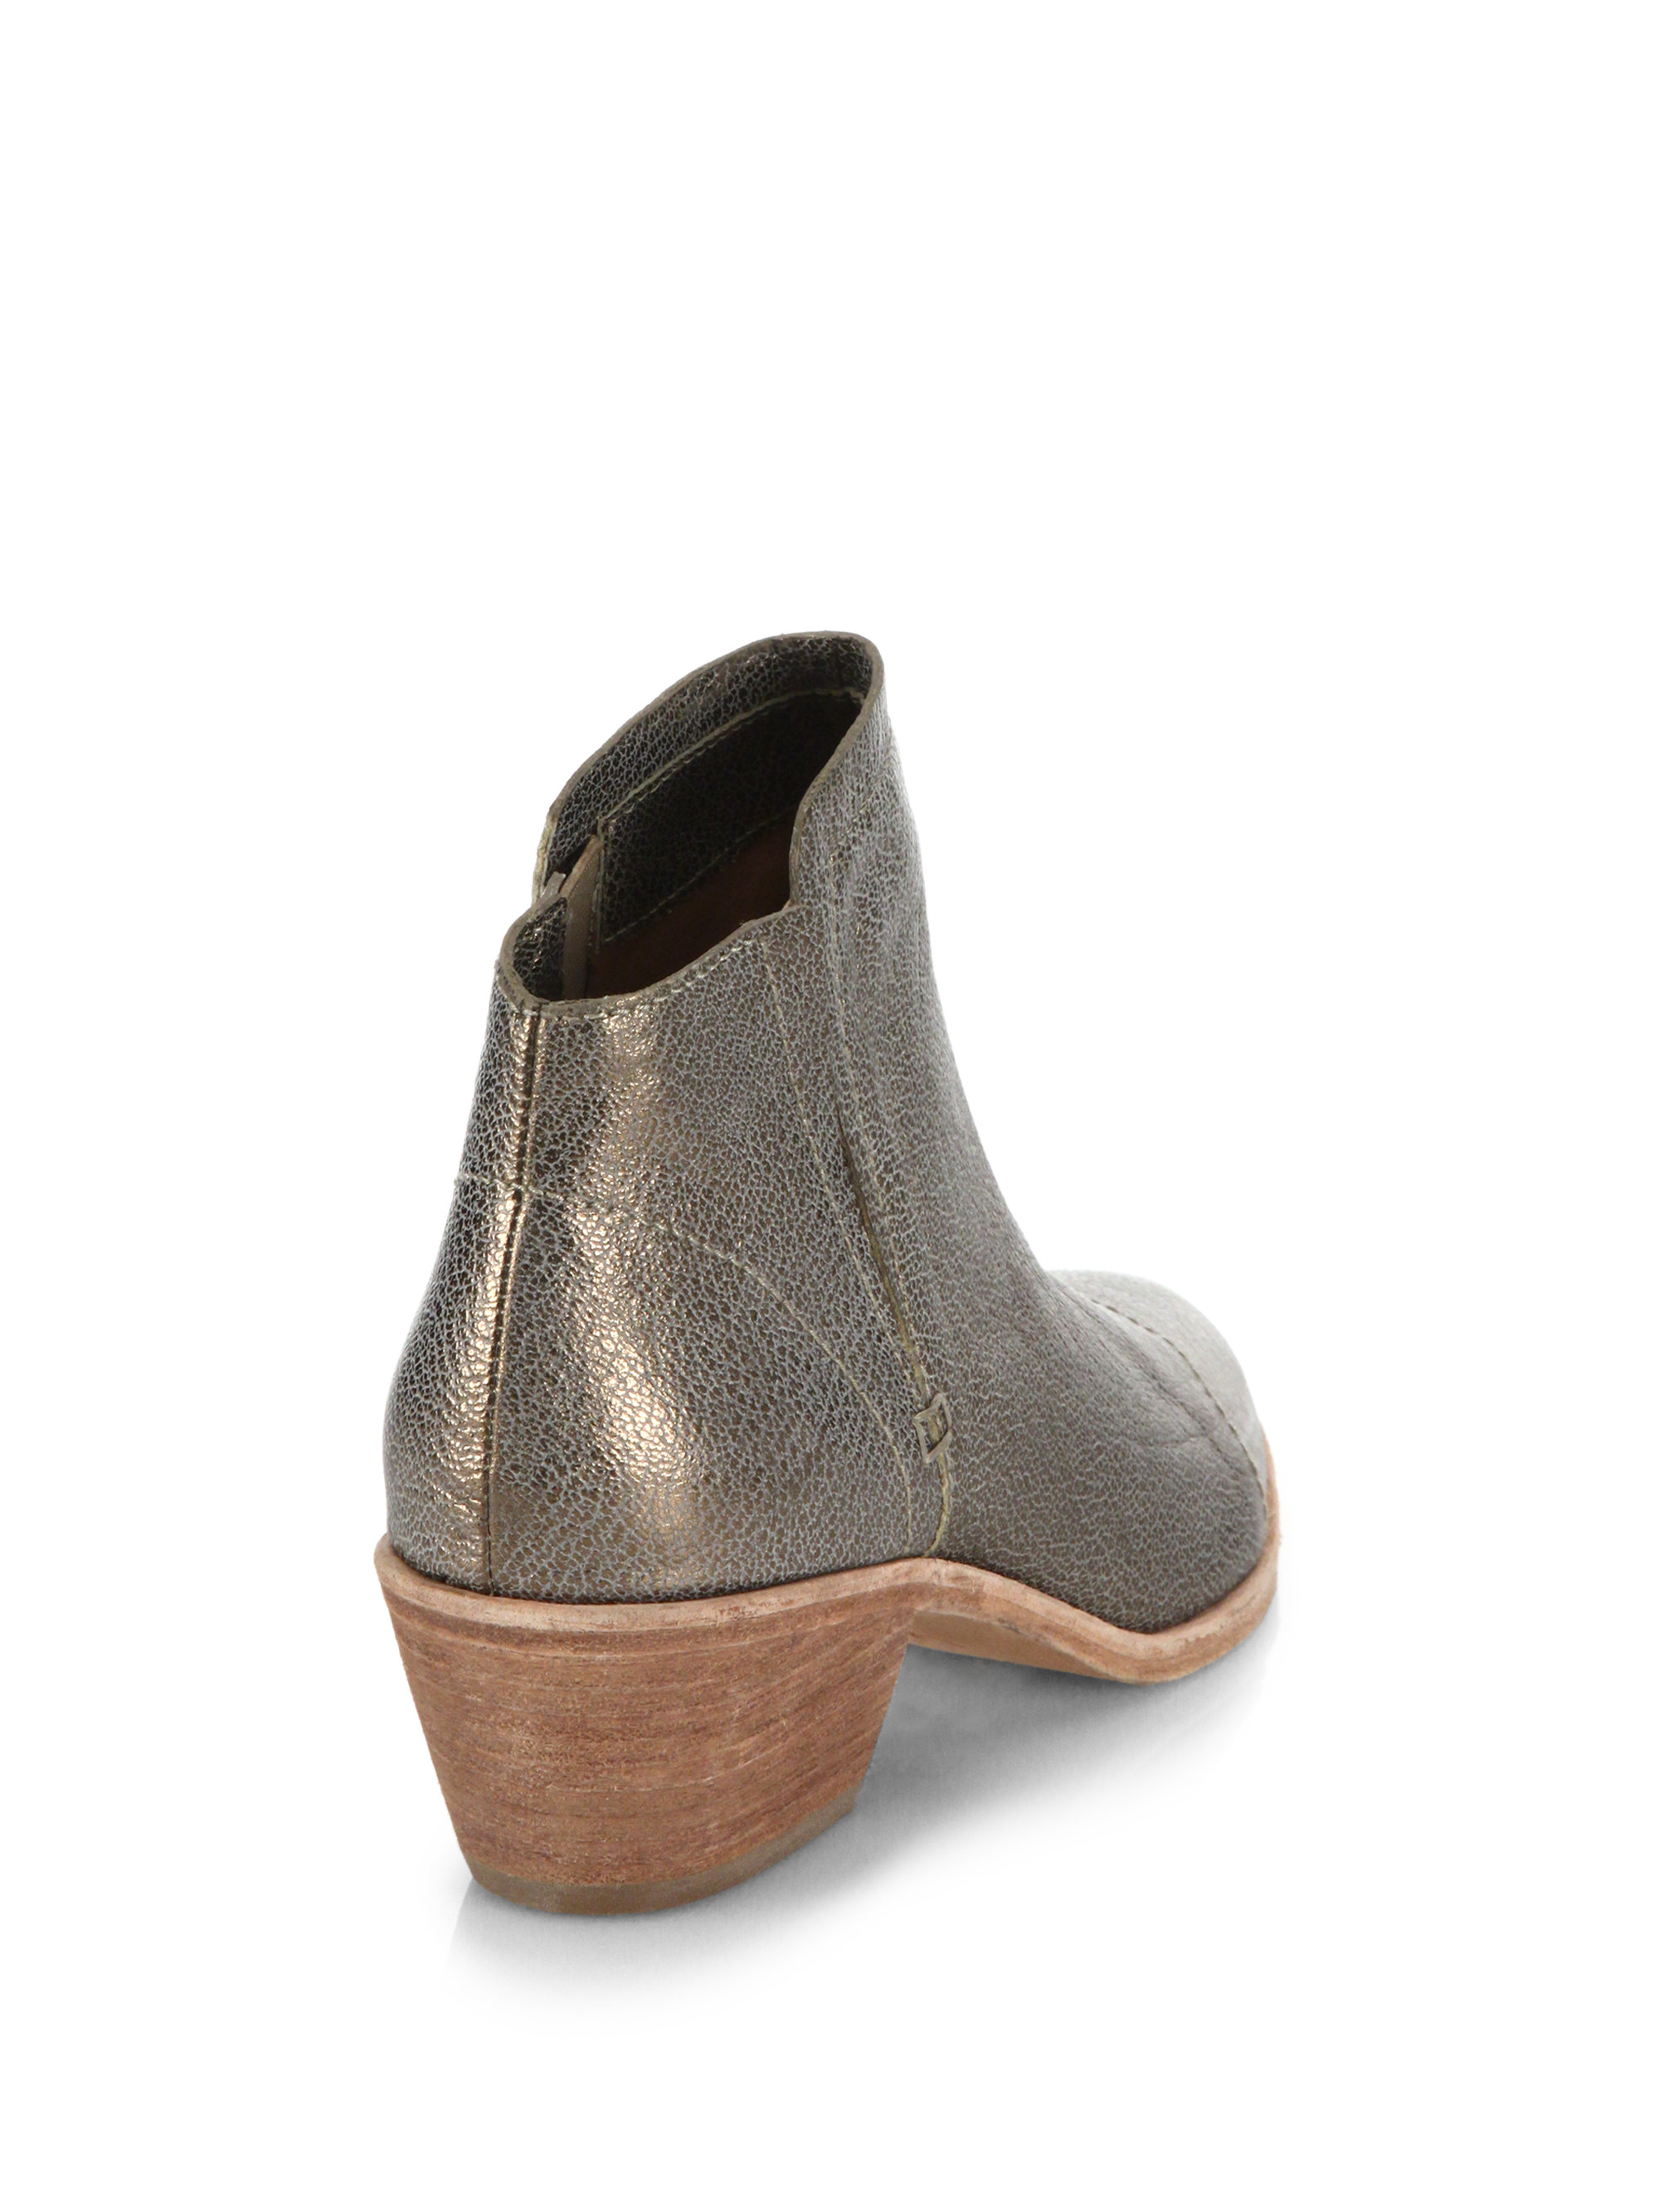 Metallic Leather Boots : Joie jodi metallic leather ankle boots in lyst